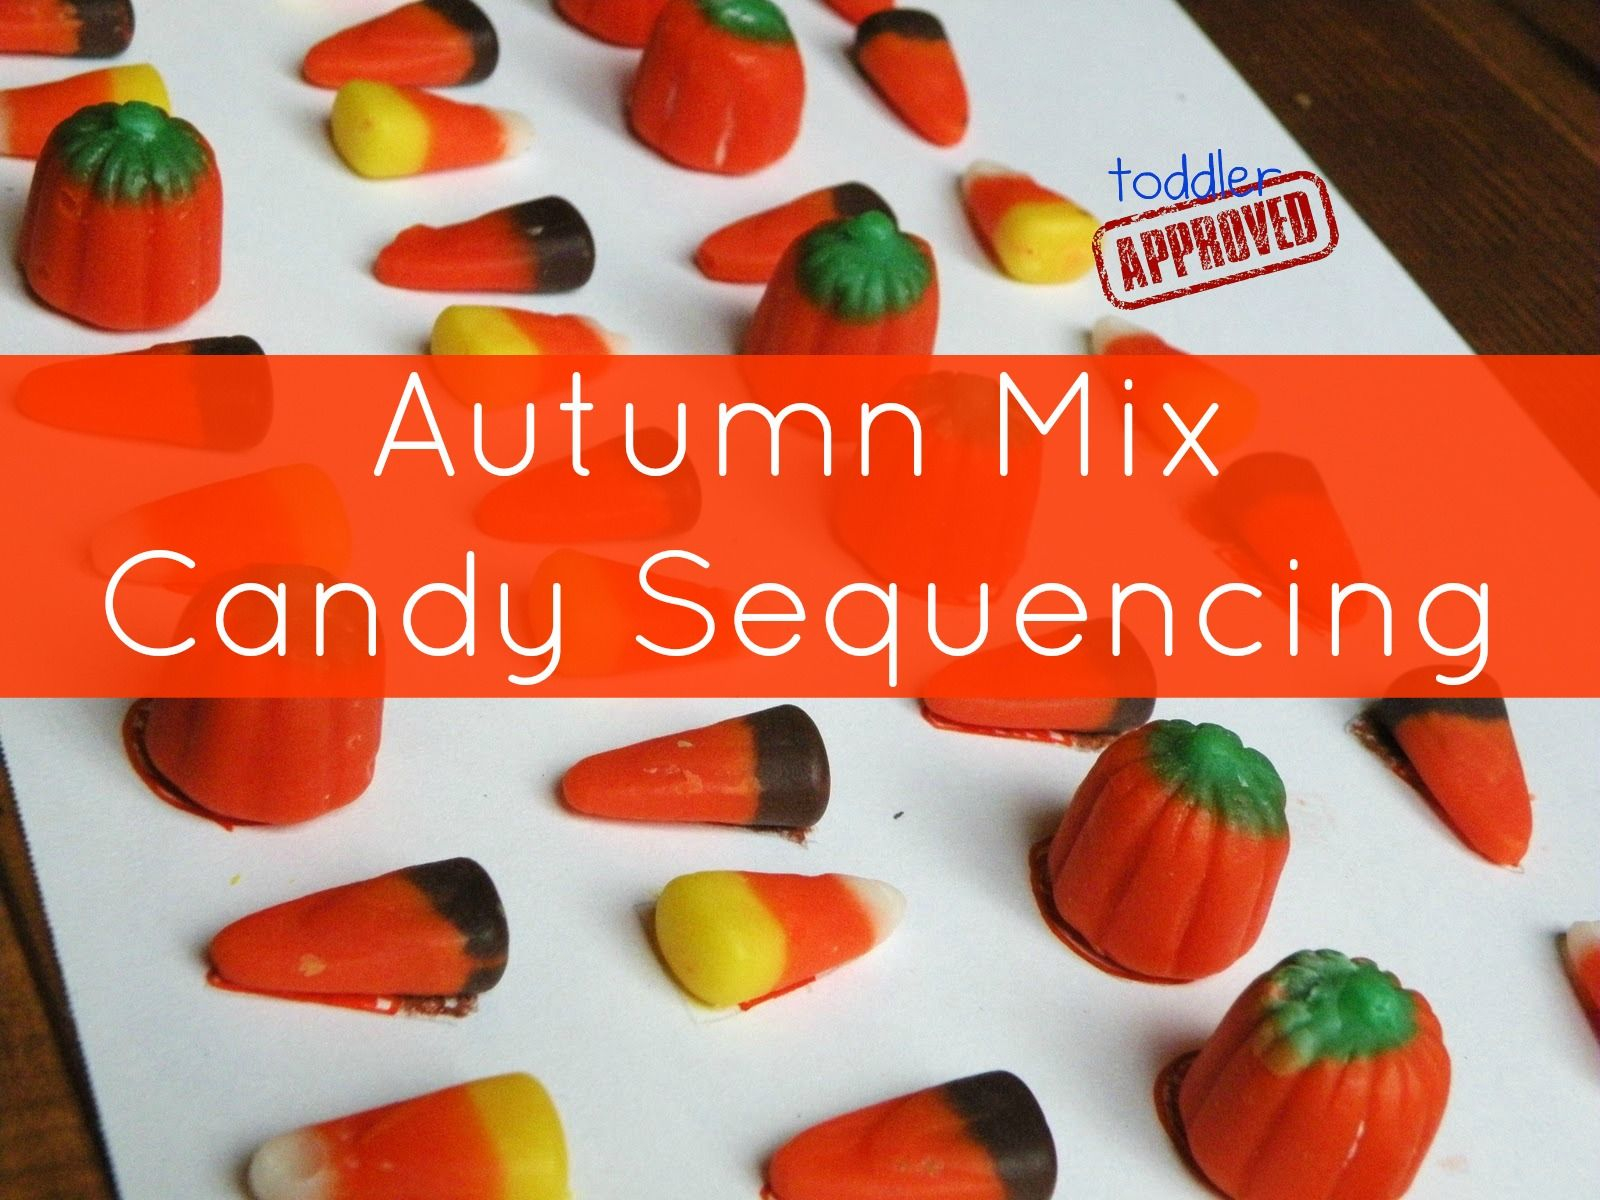 Autumn Mix Candy Sequencing